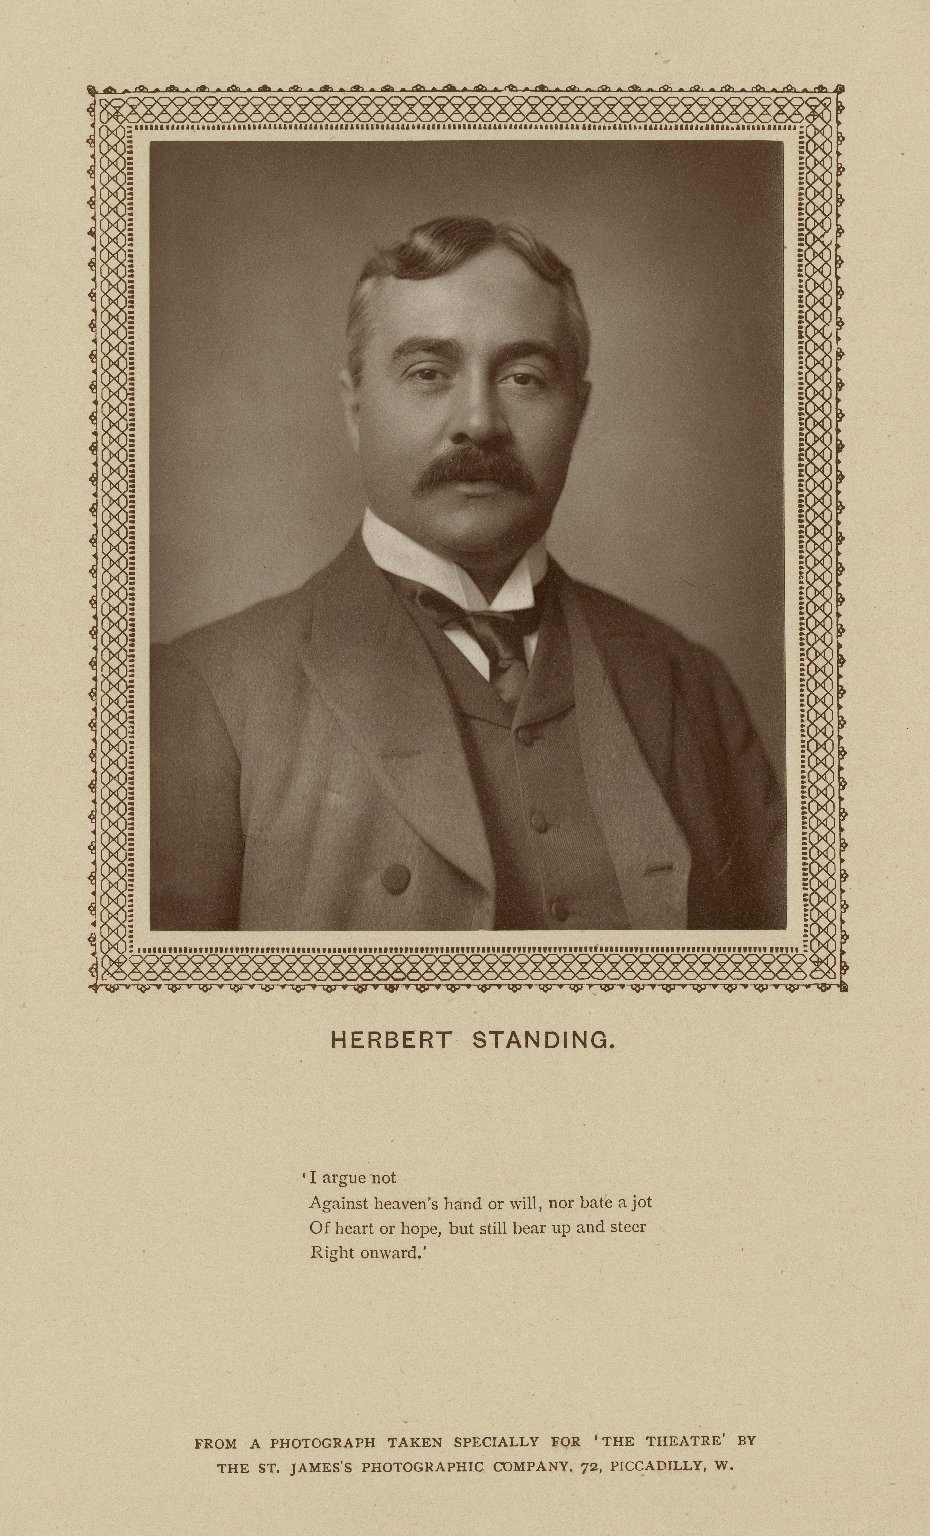 Herbert Standing [graphic] / from a photograph taken ... by the St. James's Photographic Company.